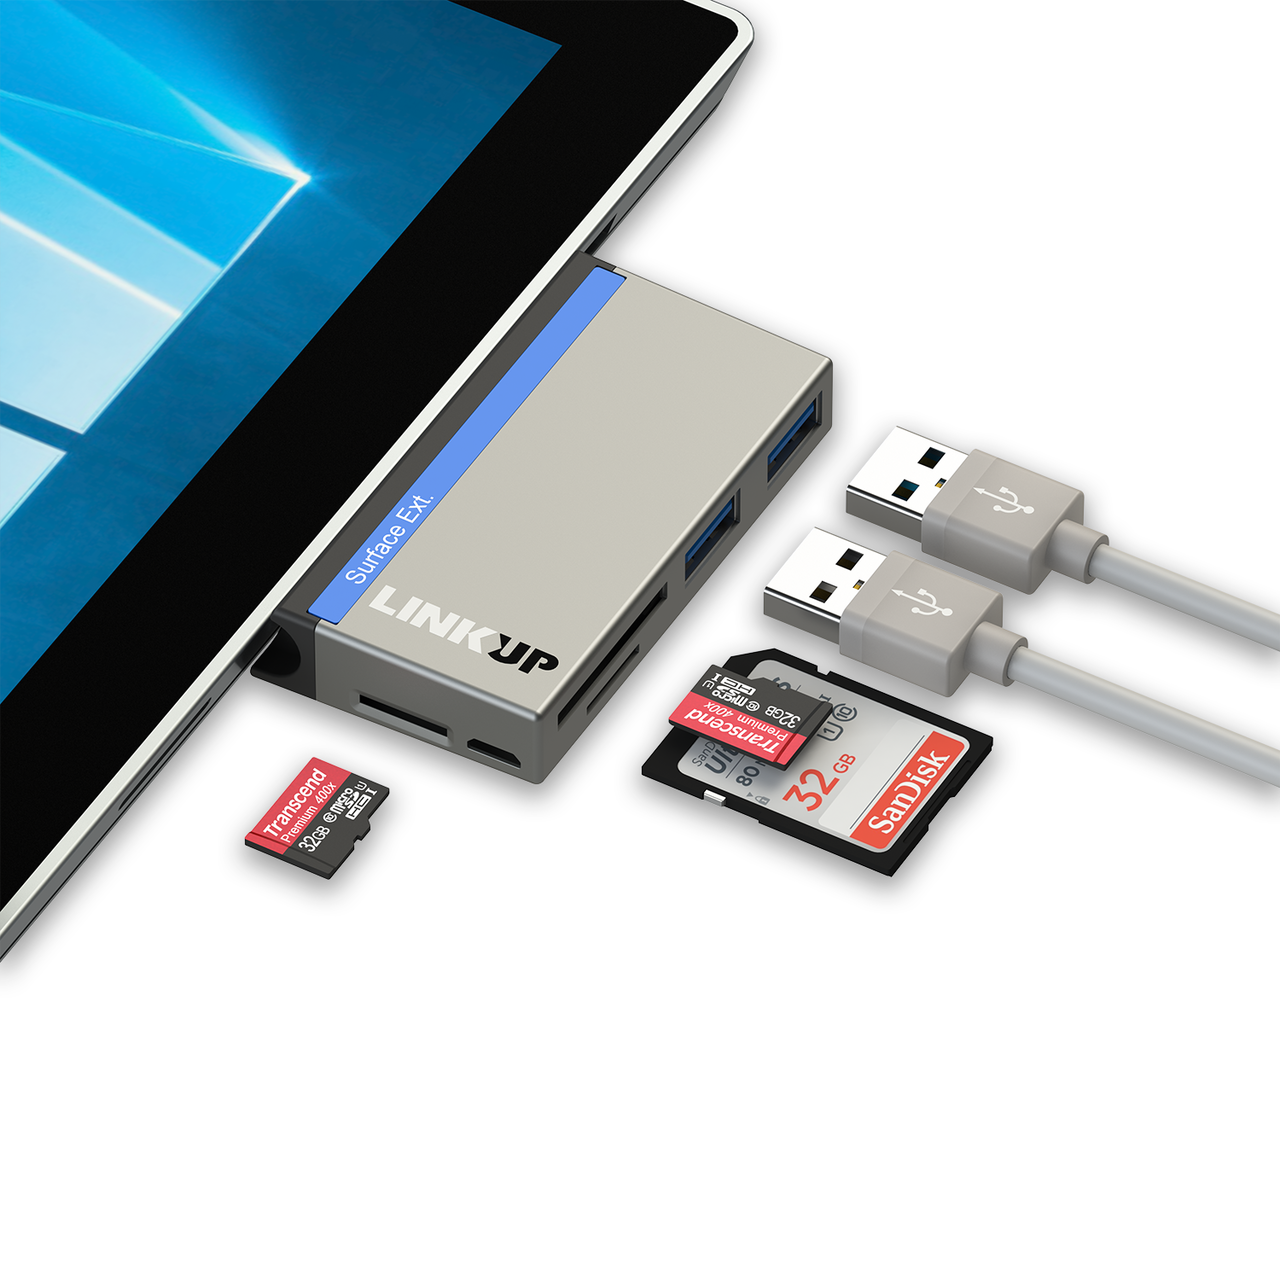 LINKUP 6-in-1 USB 3 0 Surface Pro Hub Adapter (5GB/s), Memory Card Reader  SD/Micro SD - 2 USB-A 3 0 Compatible with Microsoft Surface Pro 3 (12 3